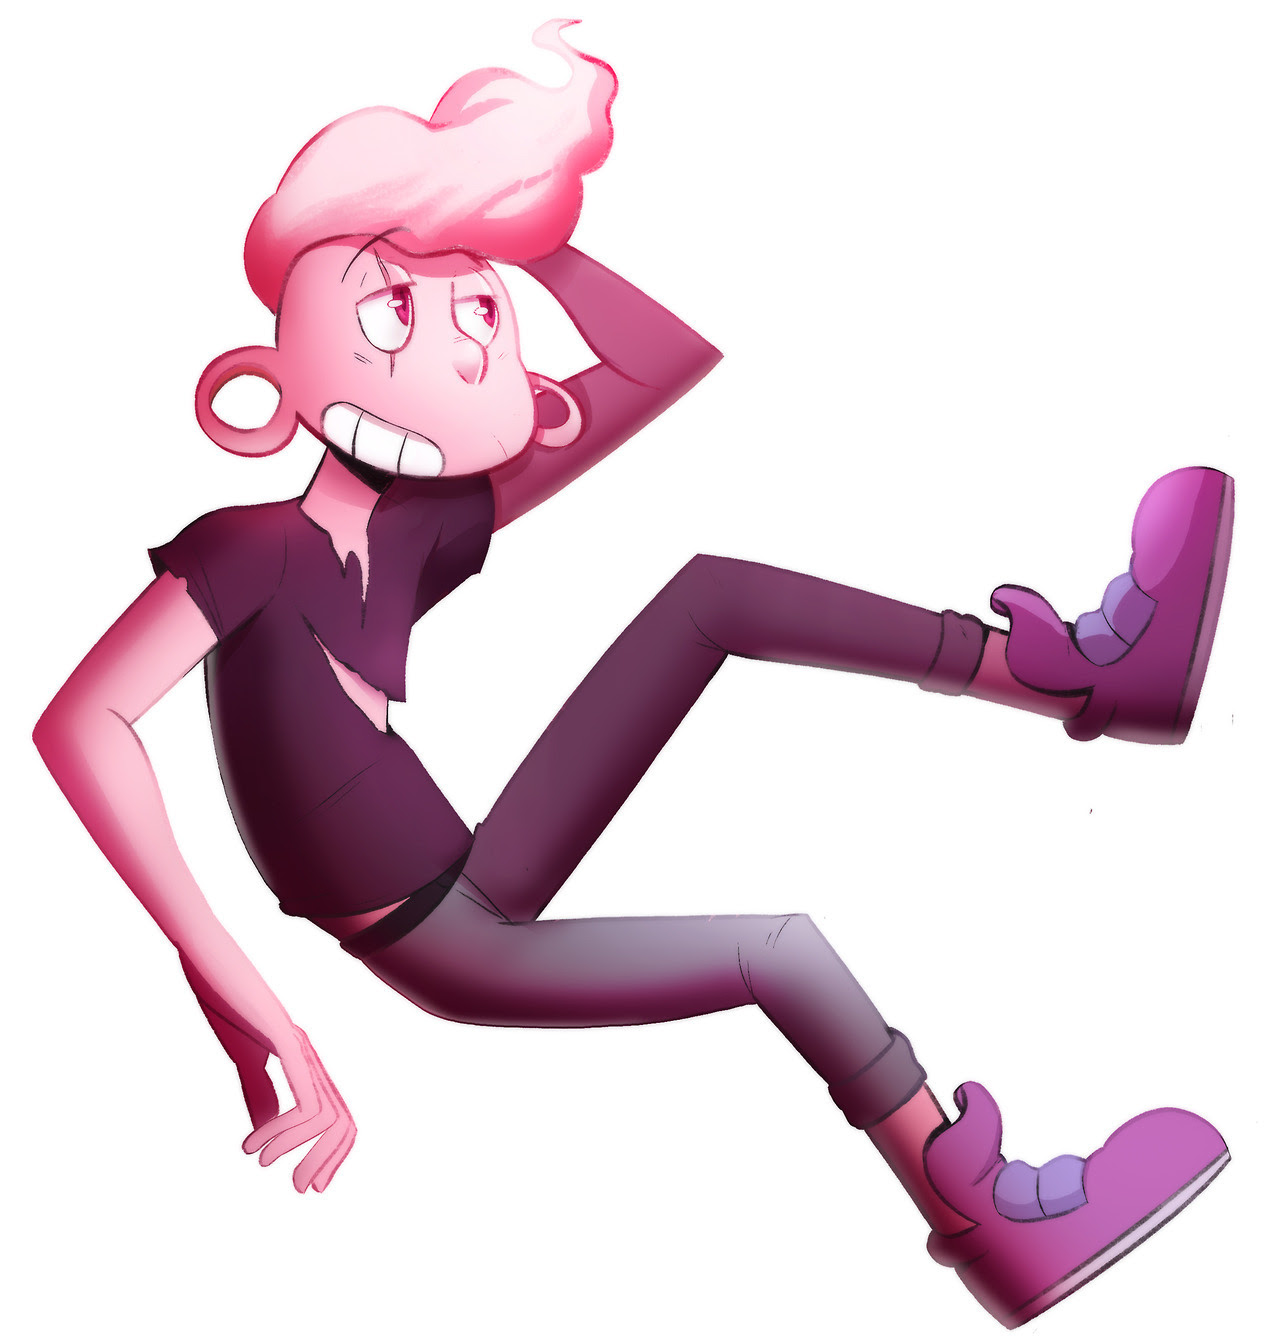 Pink Lars are you interested in commissions check this link! http://kevaz-art.tumblr.com/post/160818647280/emergency-commissions-are-open-i-am-near-to-buy